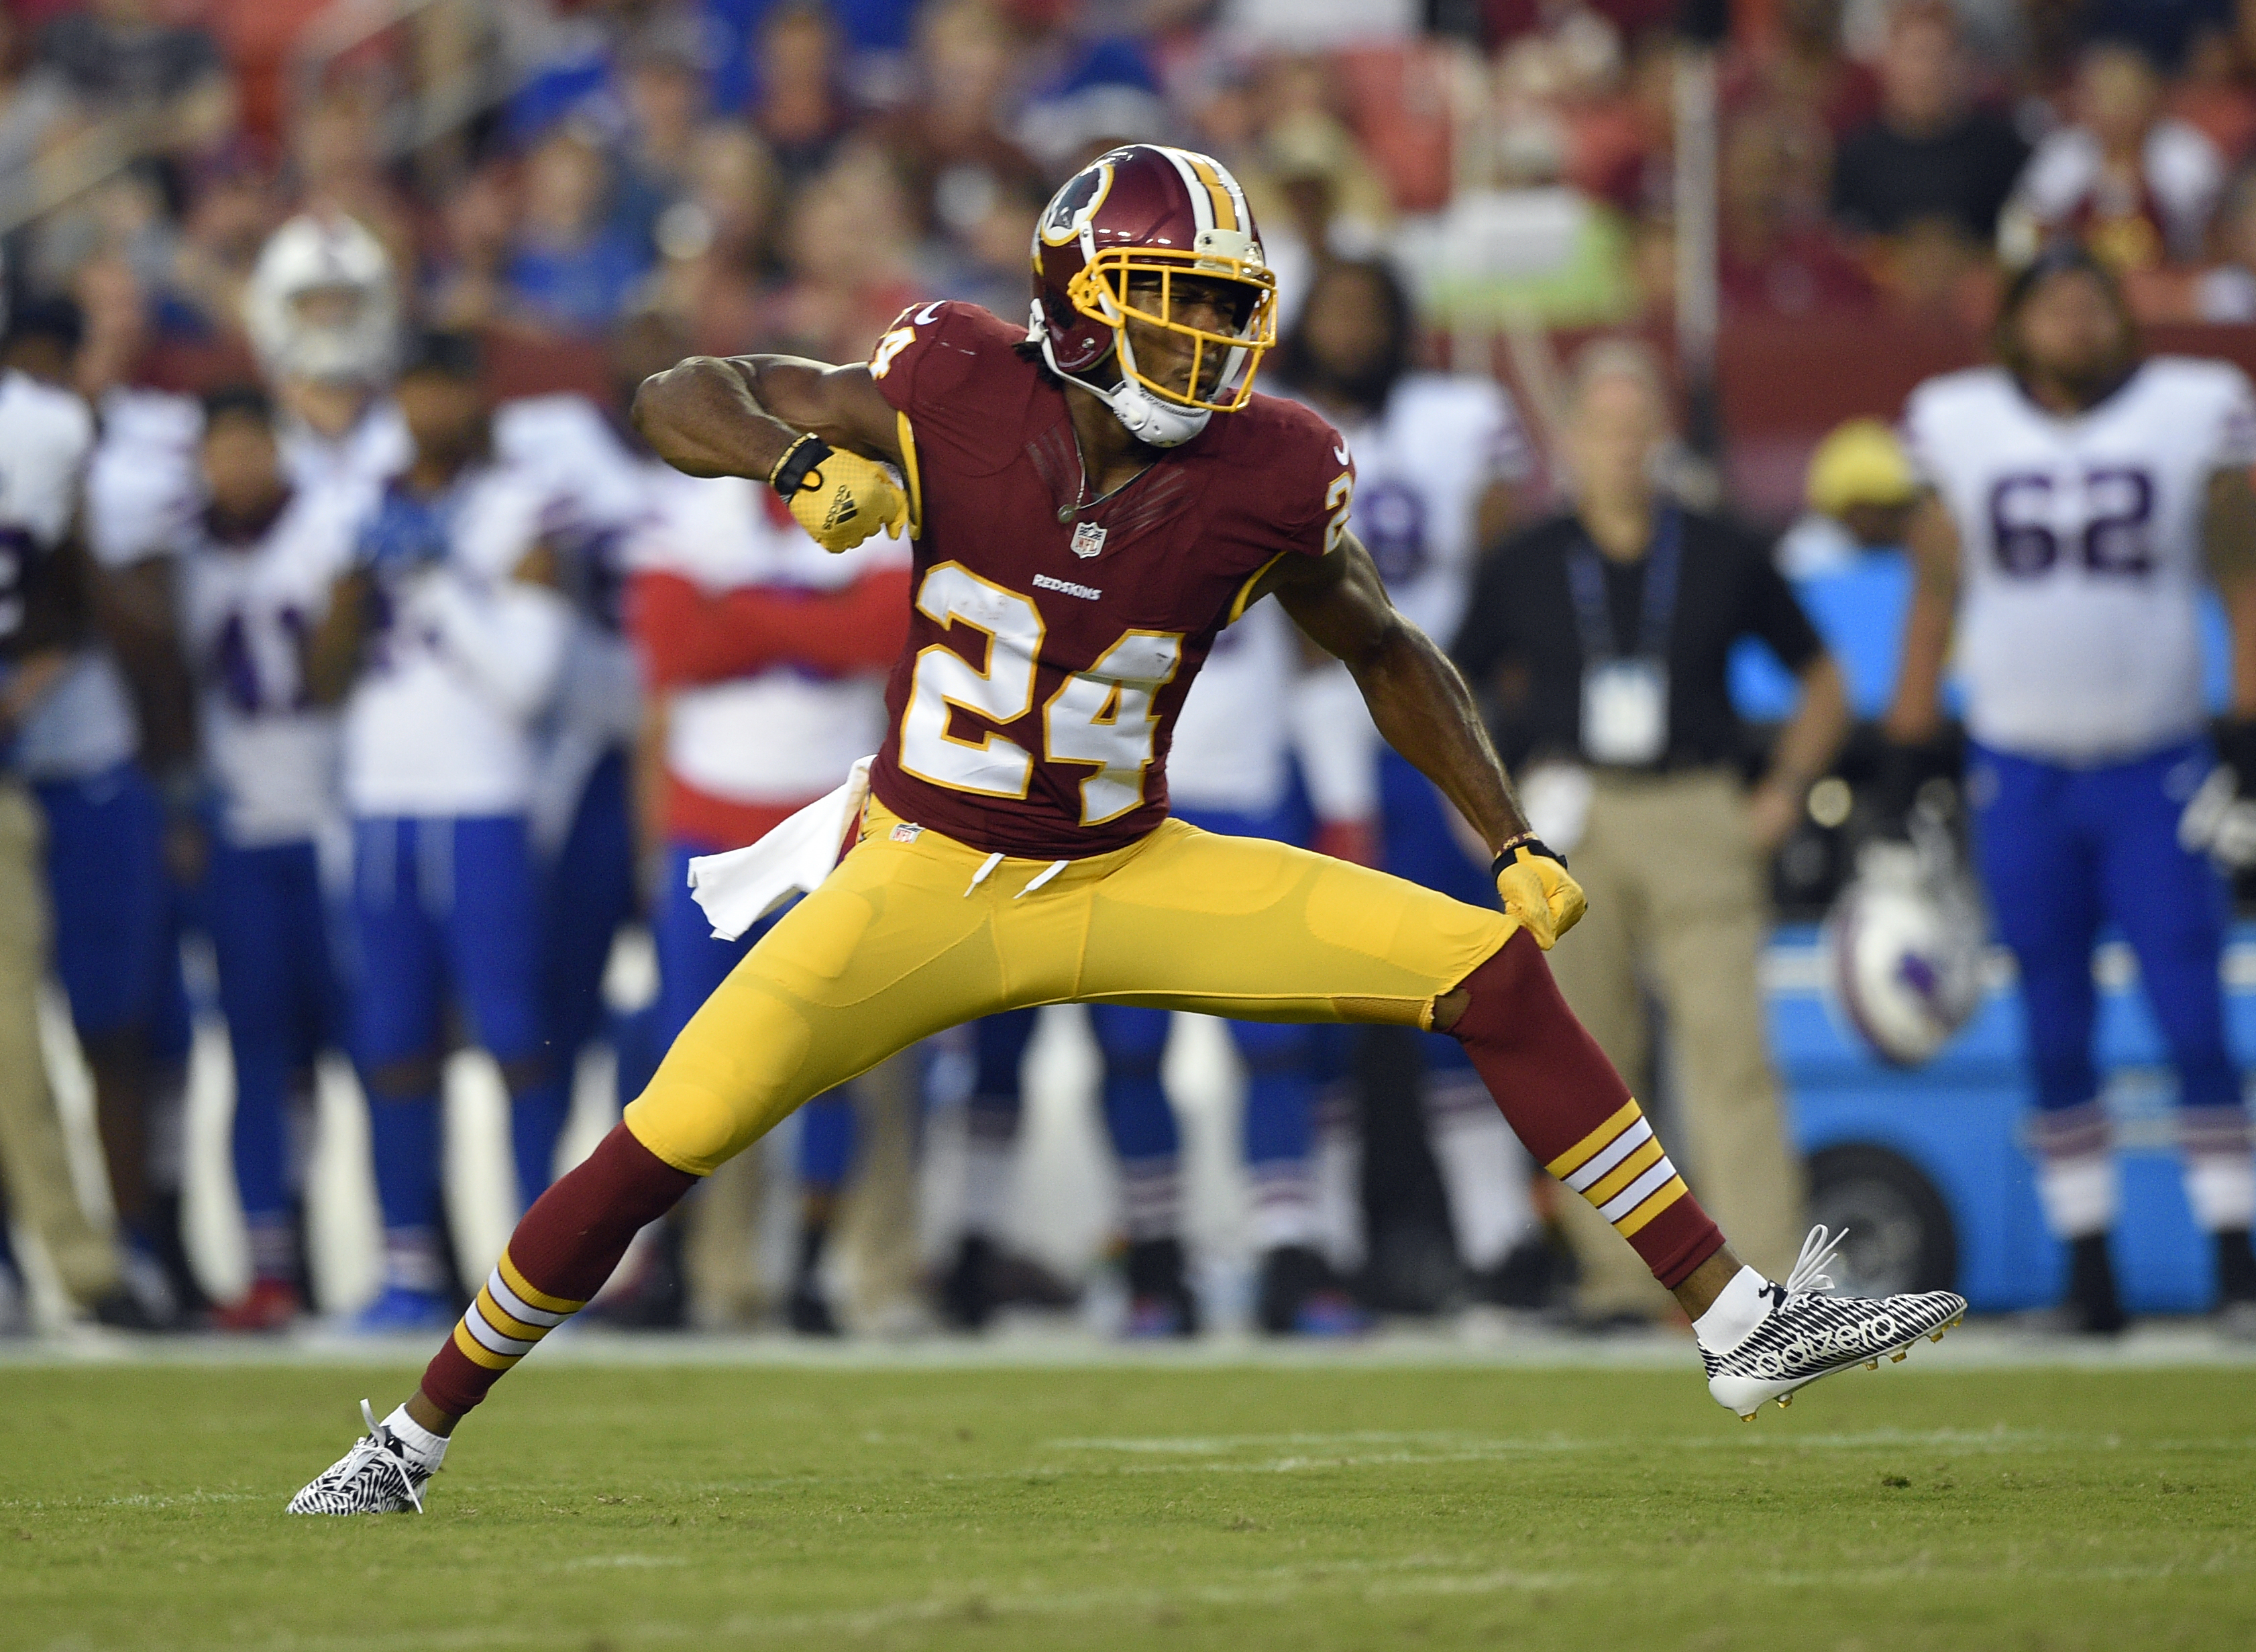 FILE - In this Aug. 26, 2016, file photo, Washington Redskins cornerback Josh Norman (24) reacts after a play during the first half of an NFL preseason football game against the Buffalo Bills in Landover, Md. After signing a $75 million, 5-year deal, the